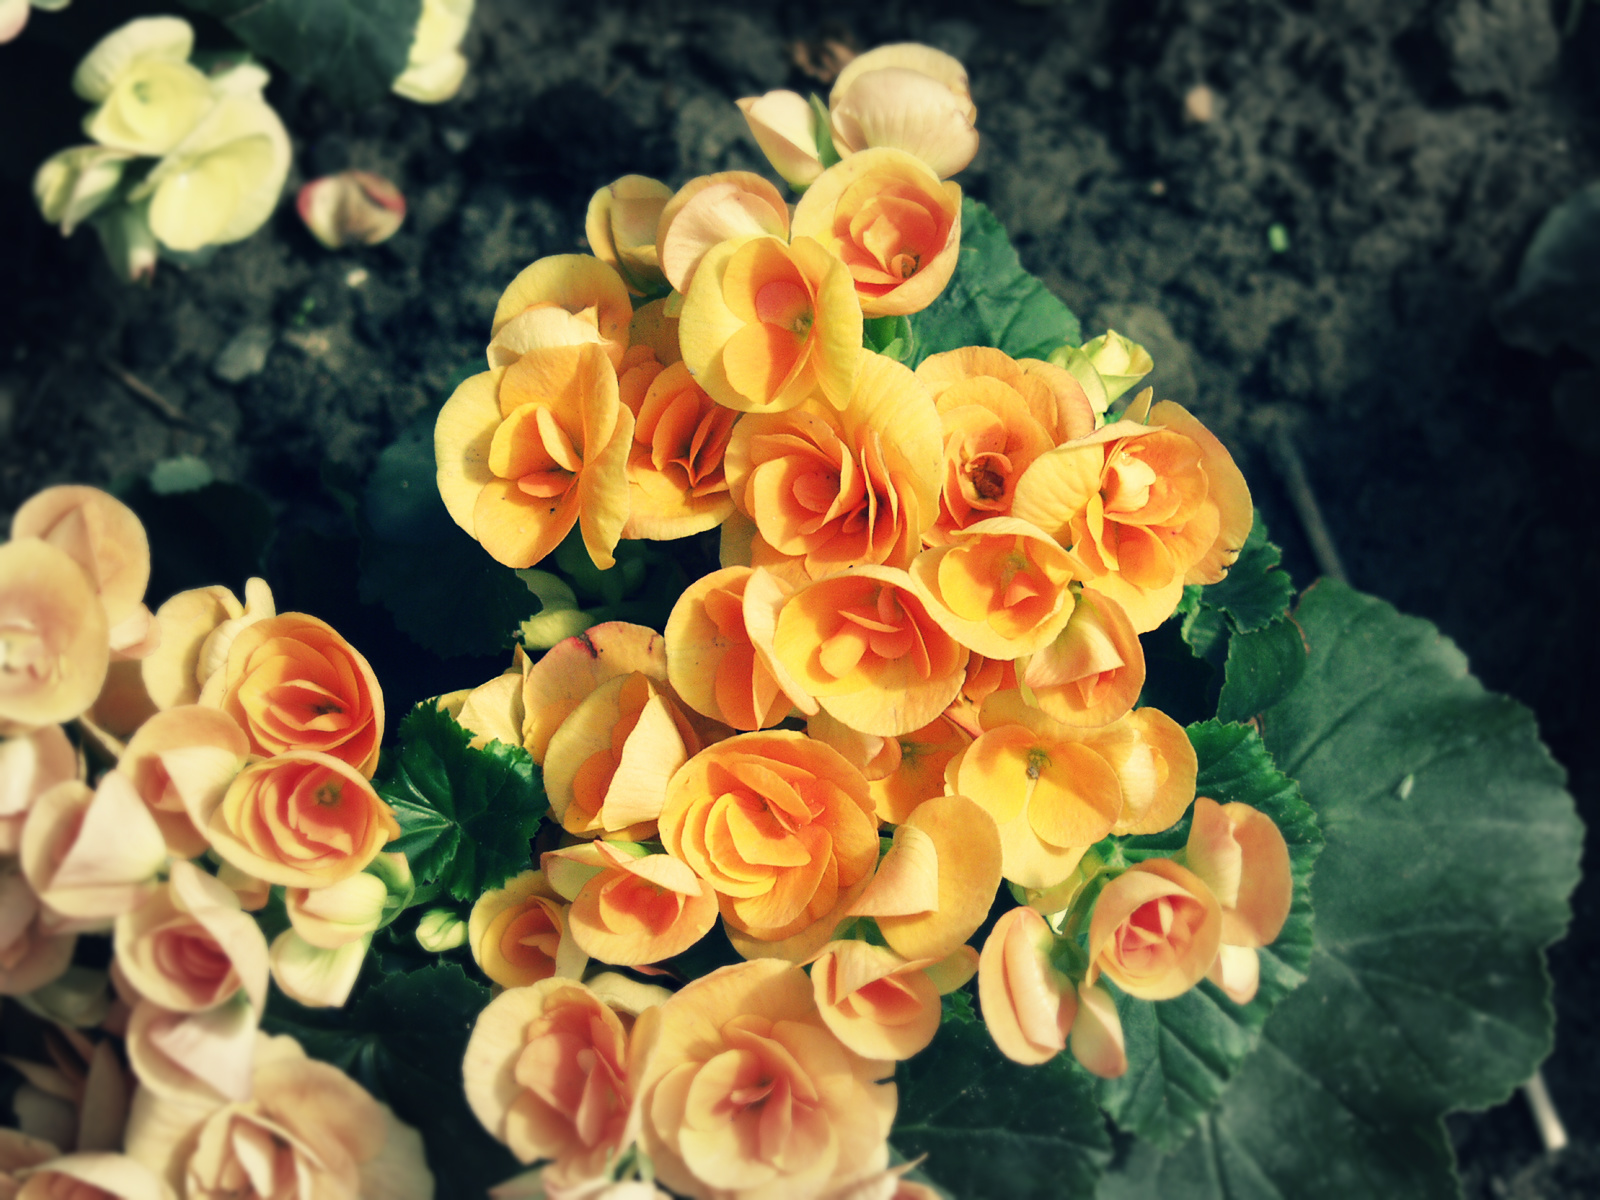 How to care for yellow roses-4331